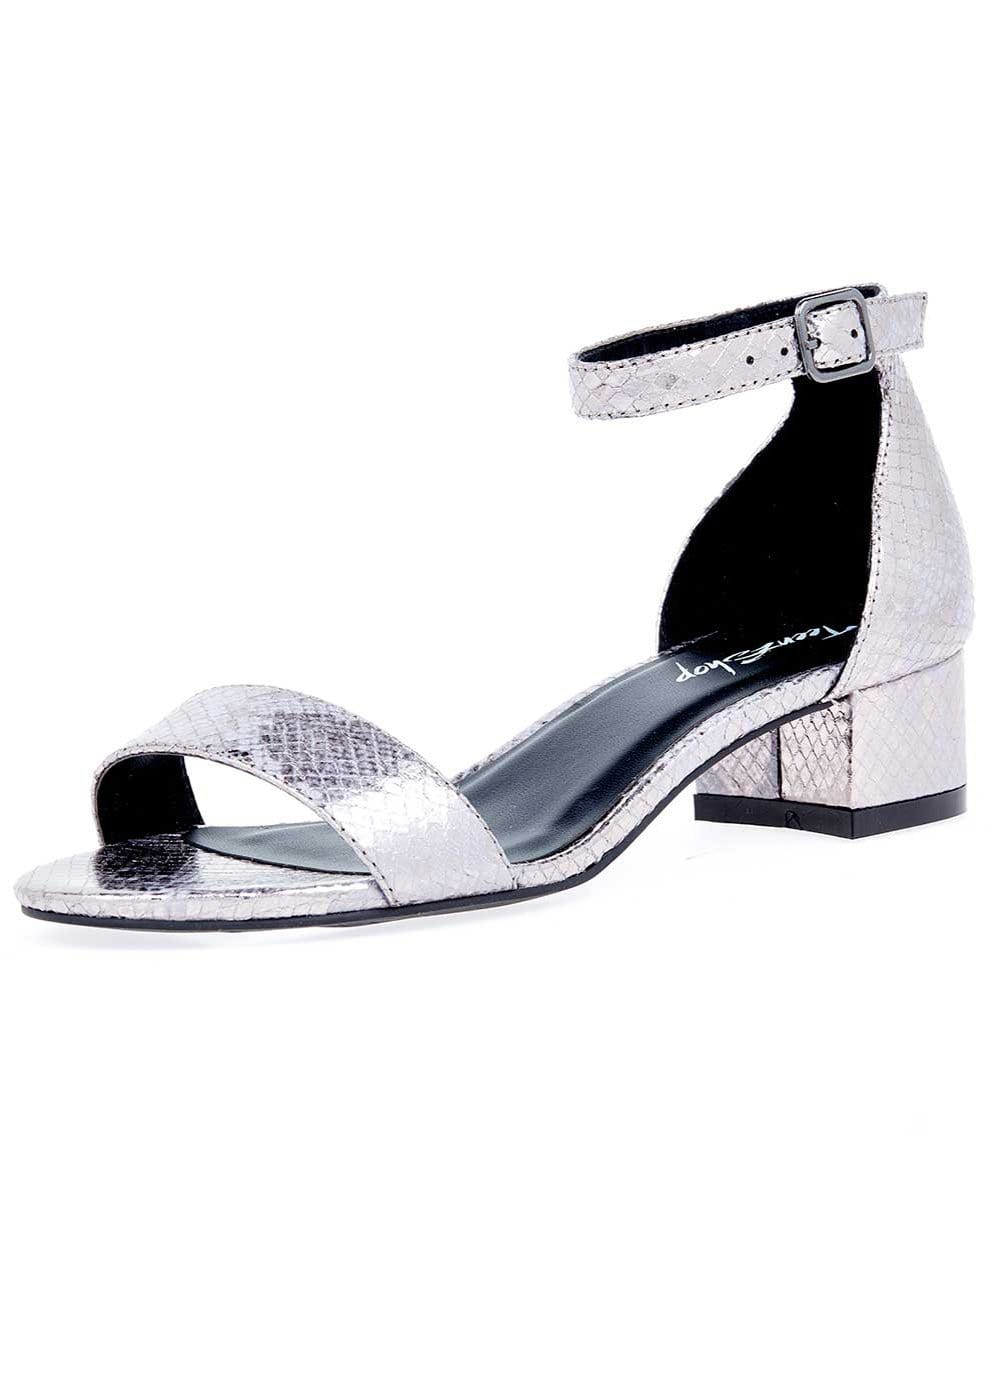 TeenzShop Girls Gunmetal Small Block Heel Sandal